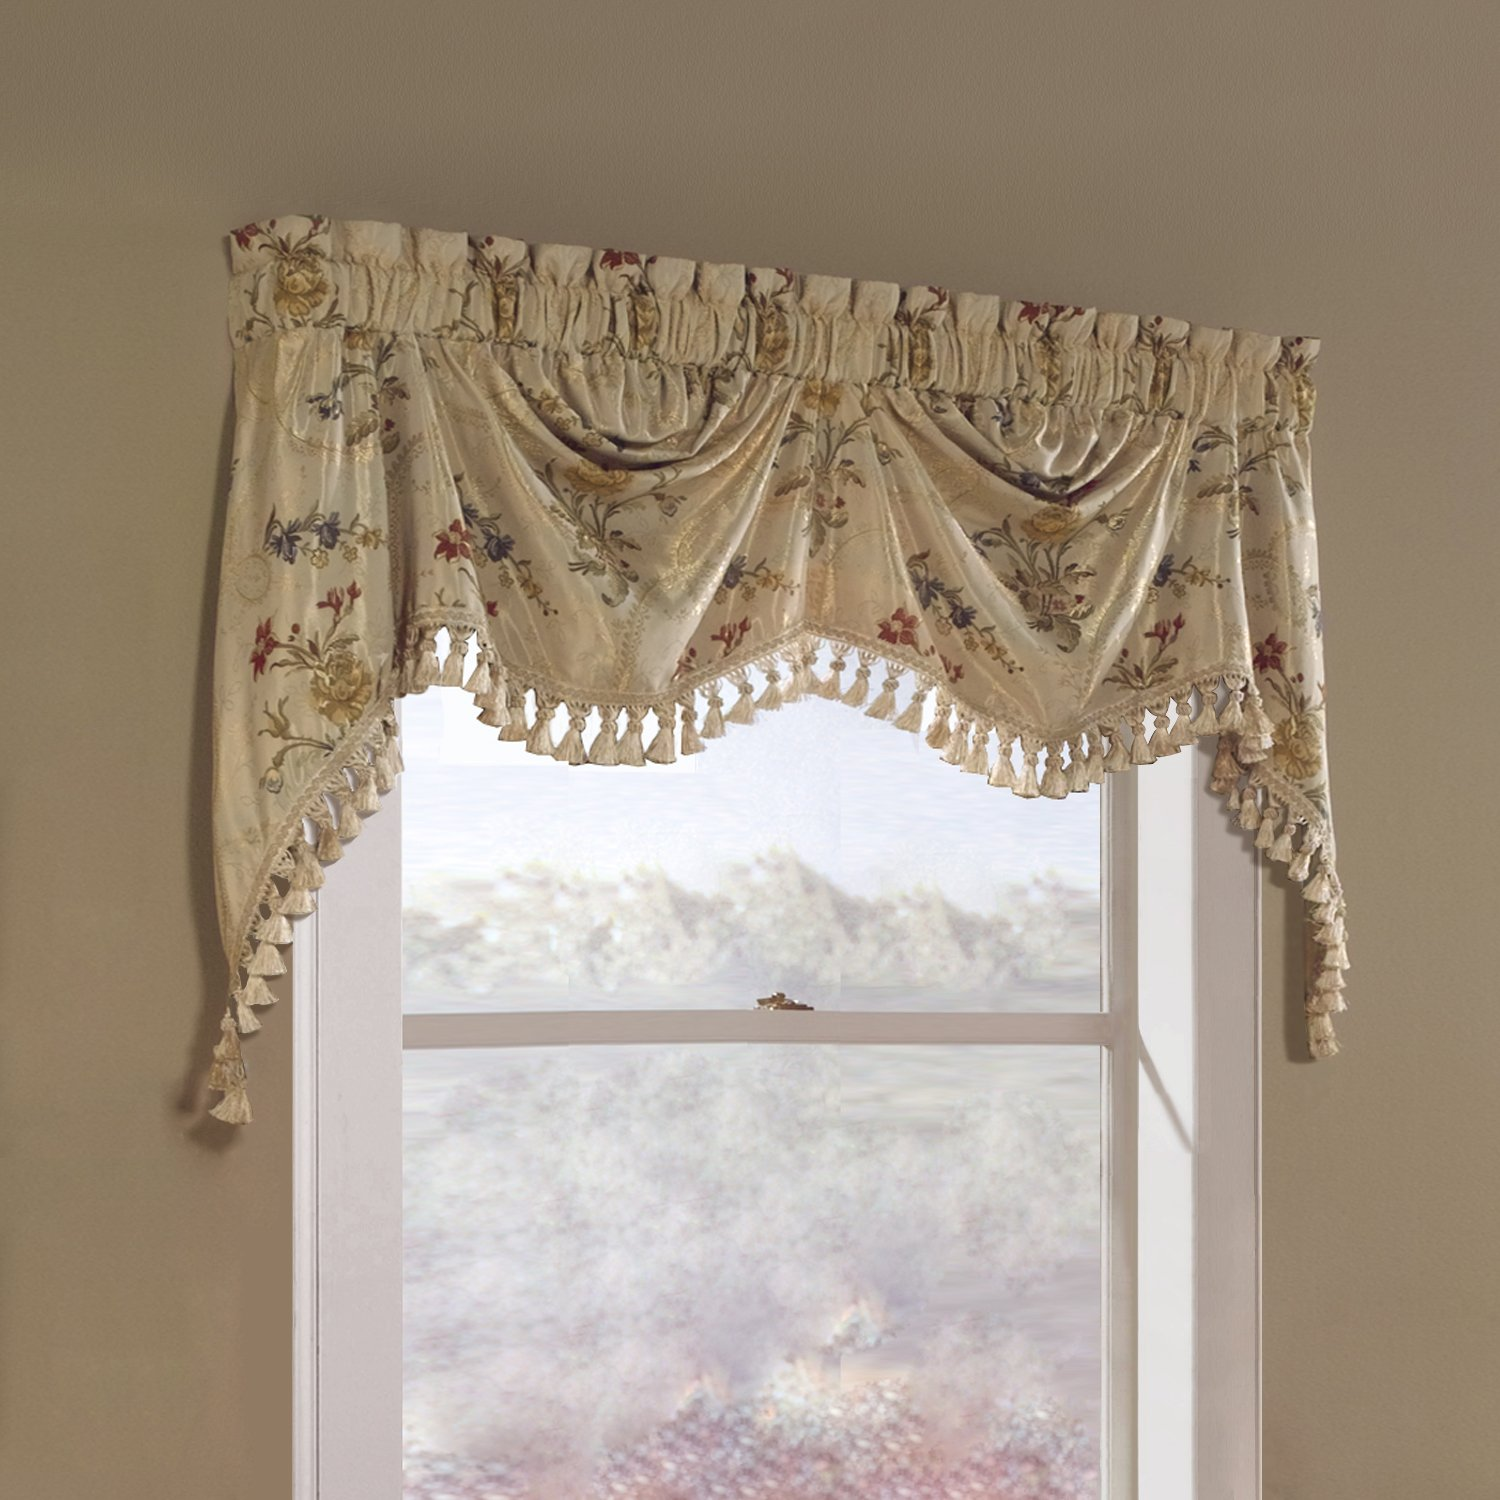 g drapery with mini valance curtain valances best they design the style